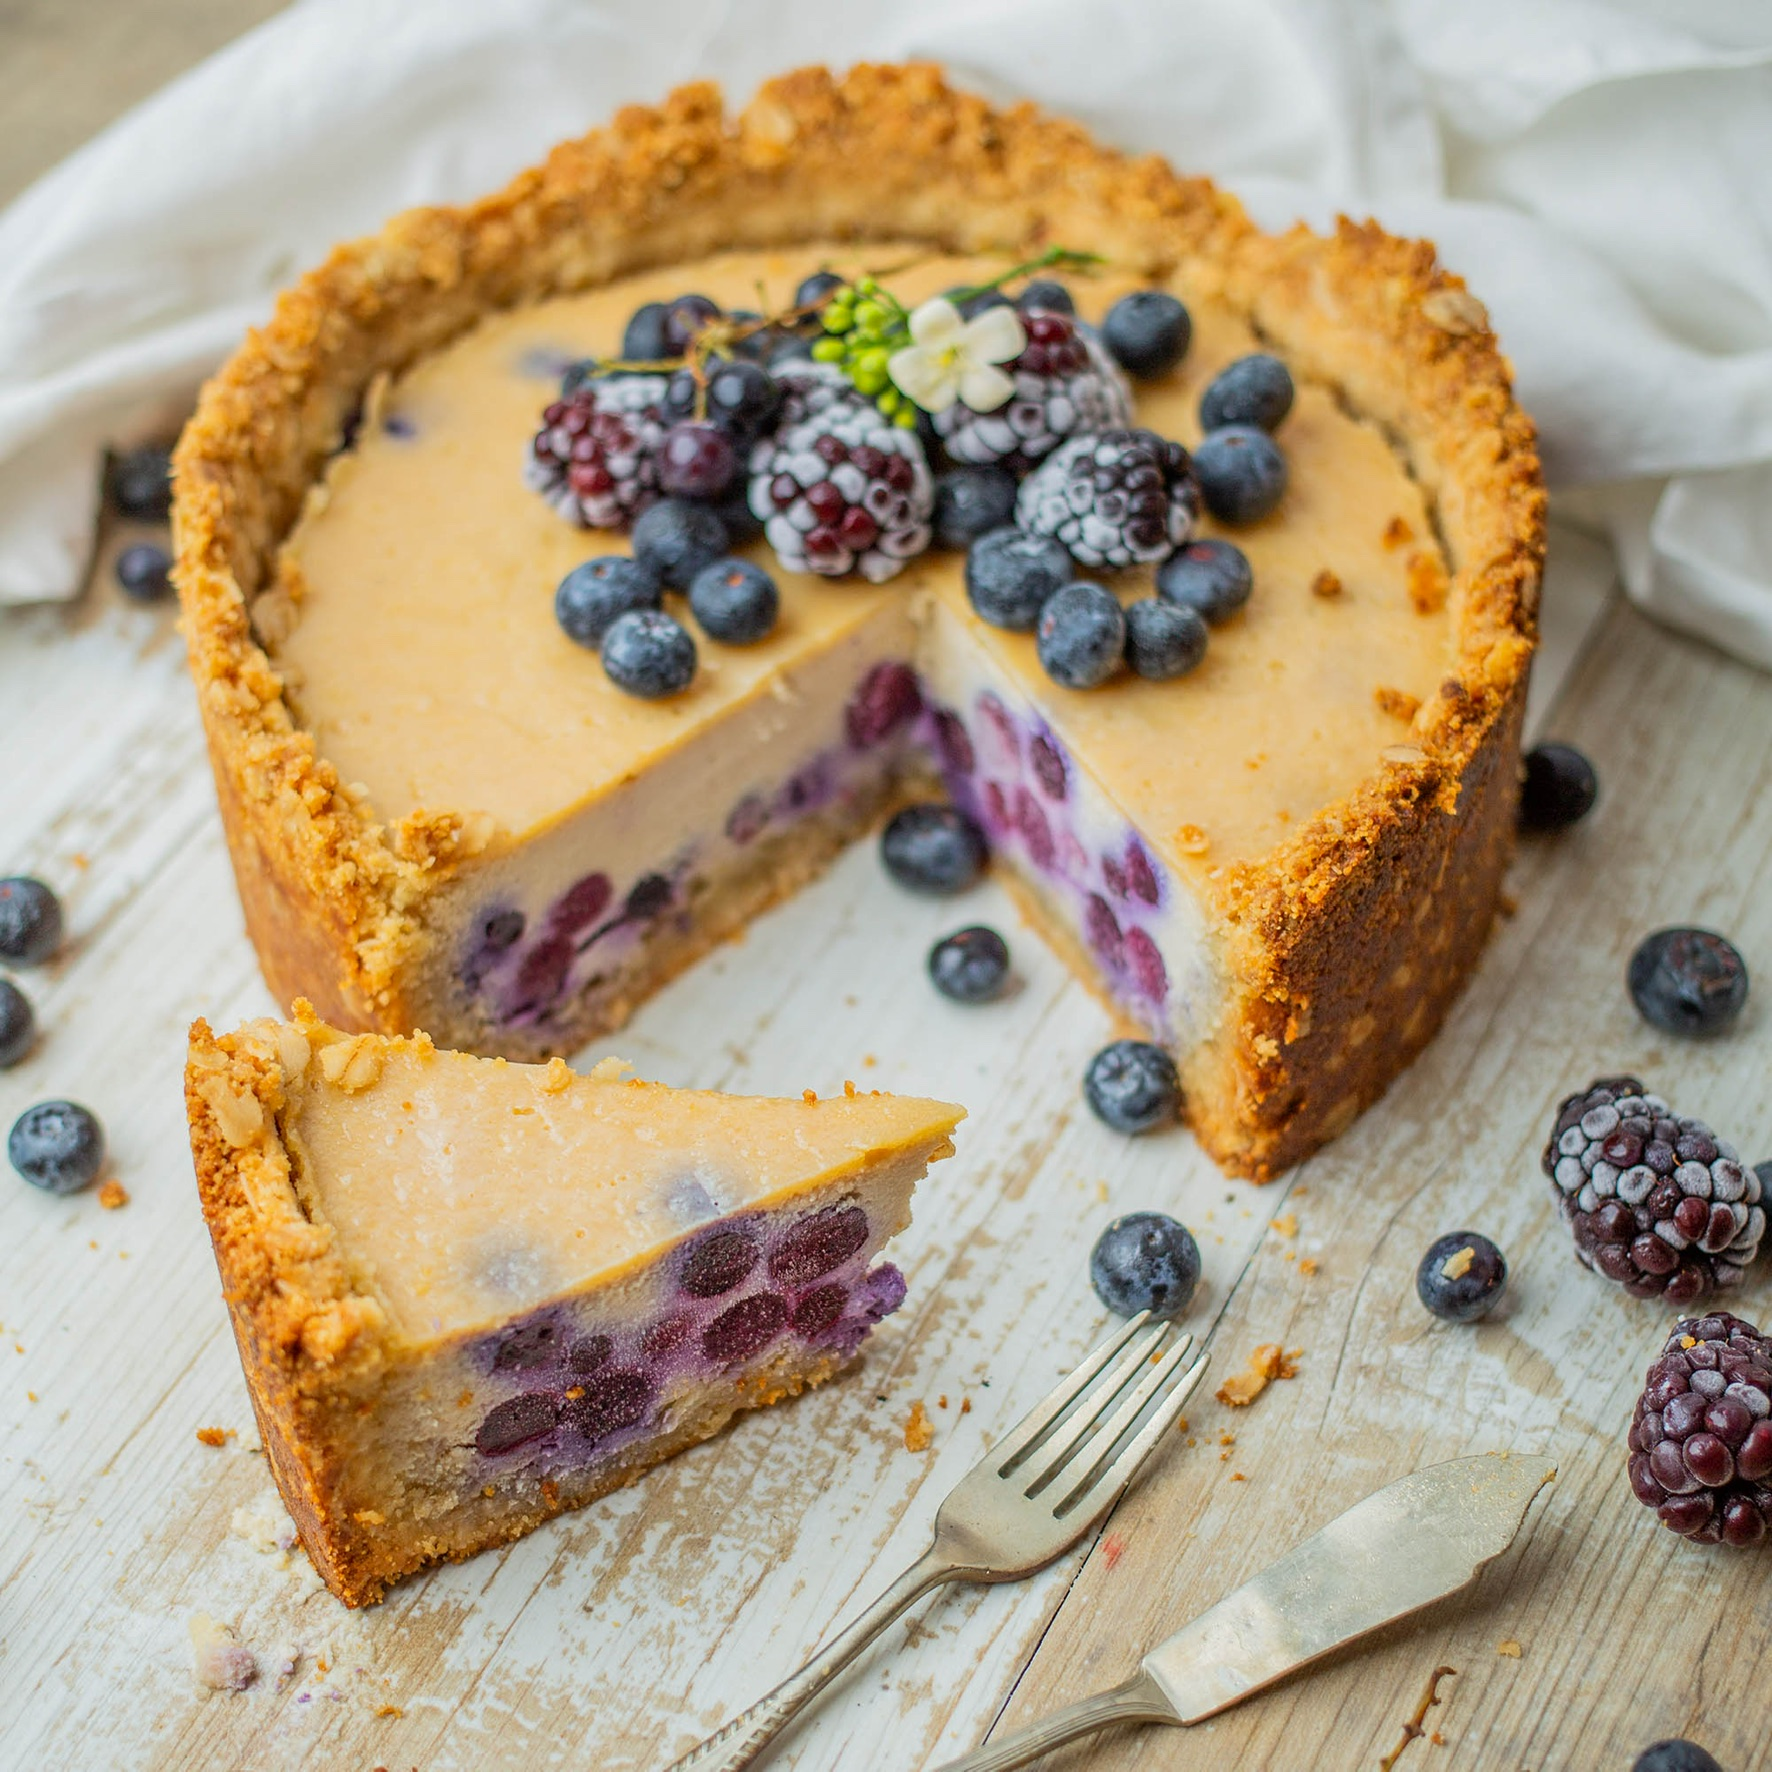 Baked Vegan Blueberry Lemon Cheesecake – no coconut